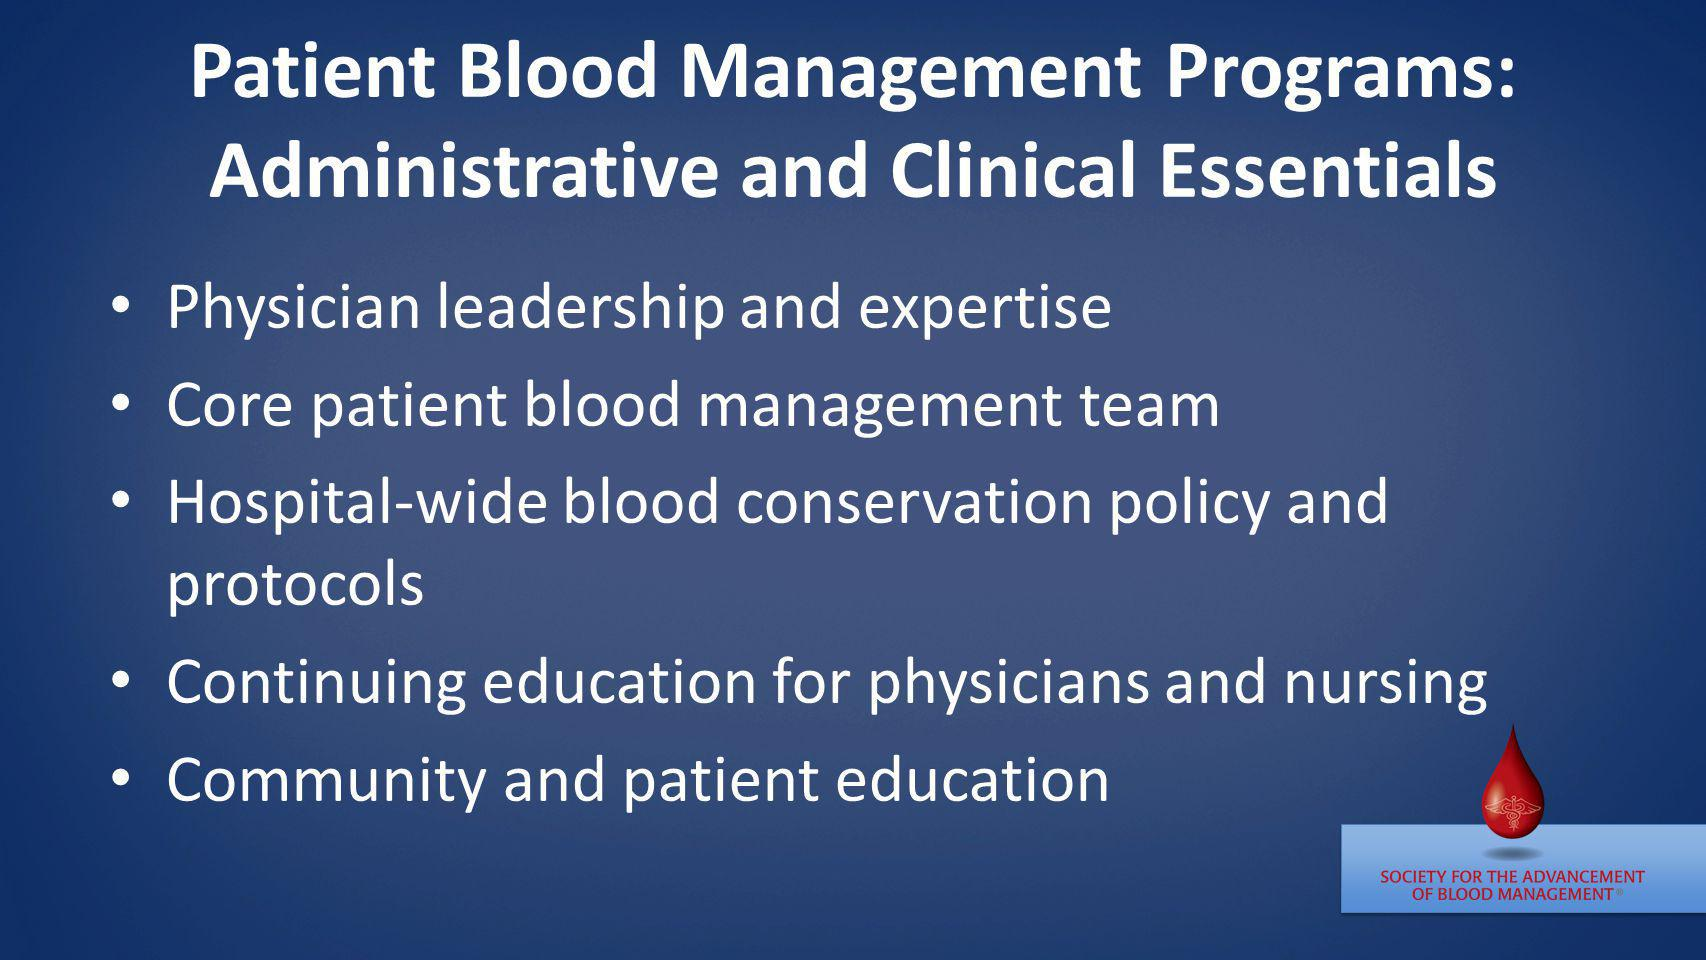 Patient Blood Management Programs: Administrative and Clinical Essentials Physician leadership and expertise Core patient blood management team Hospit